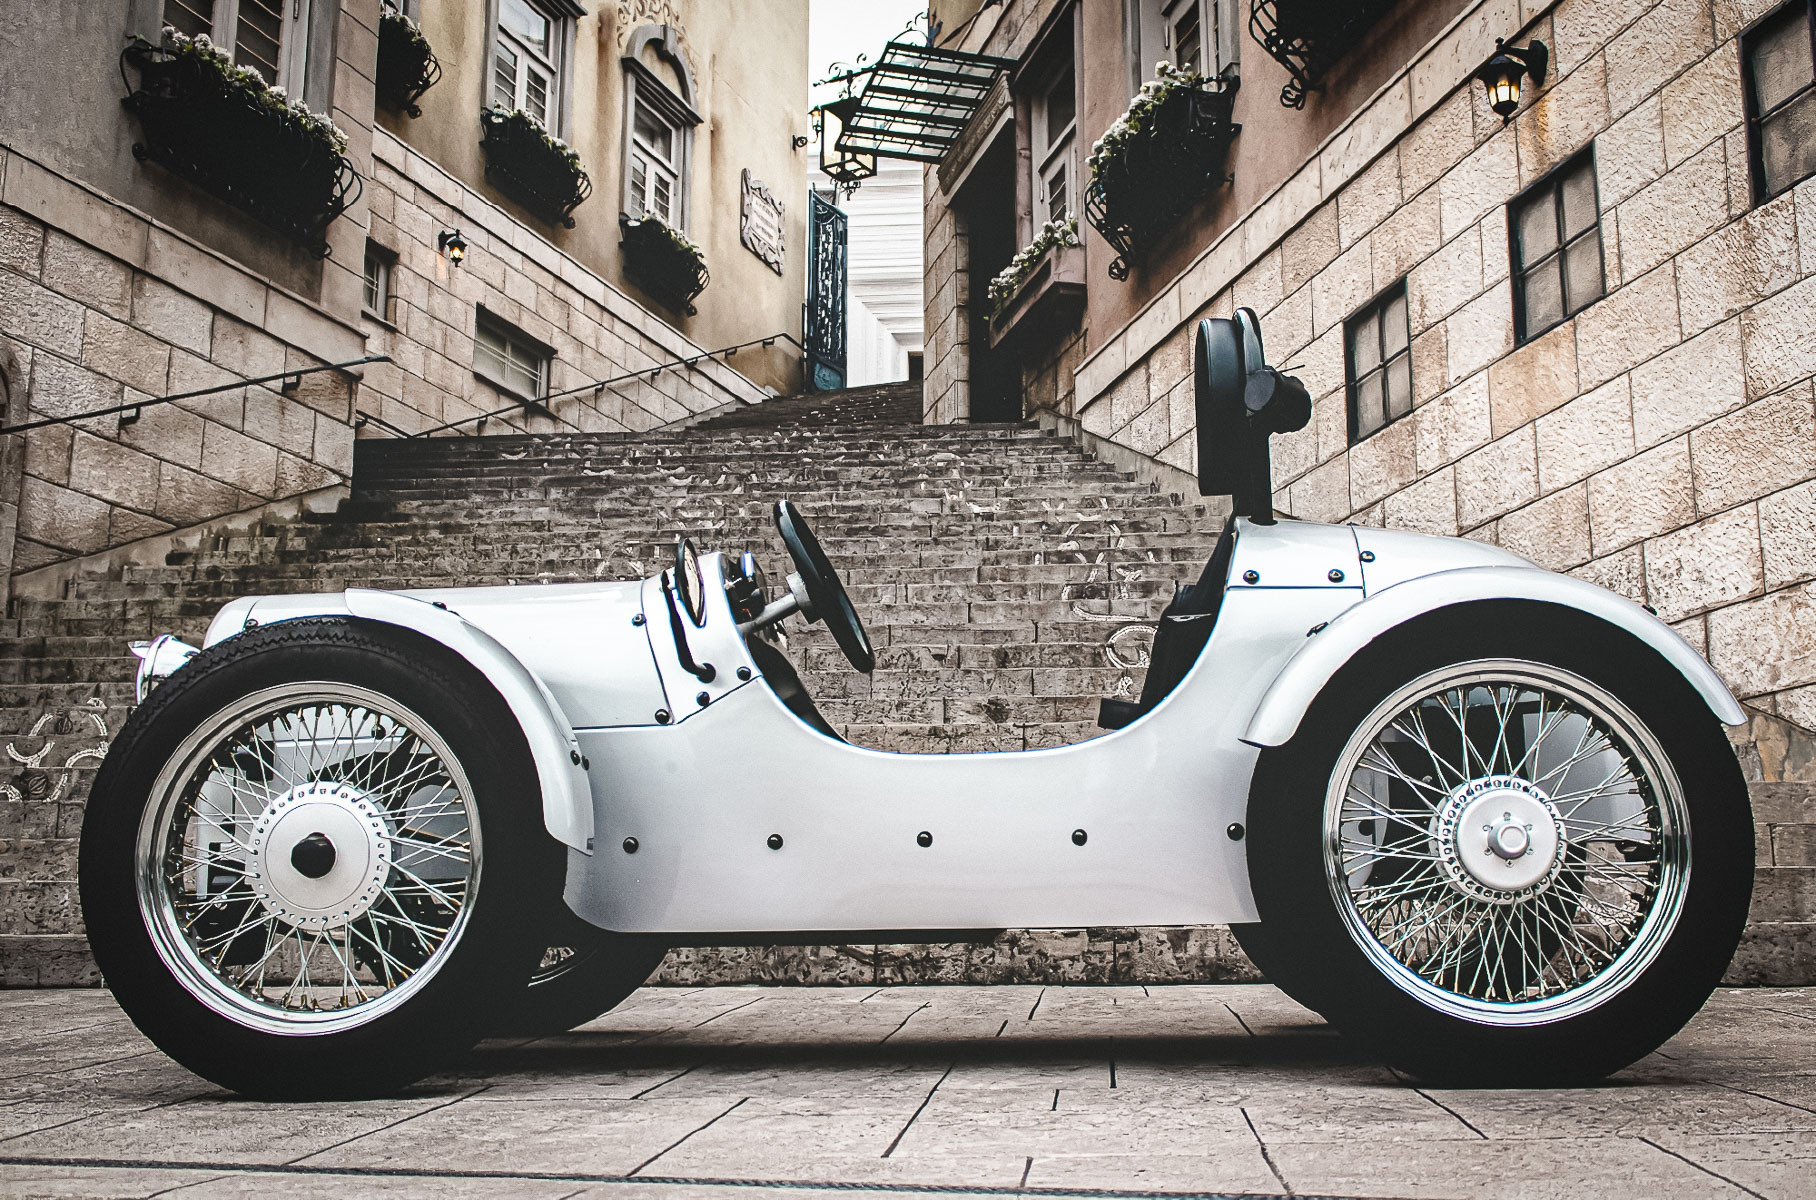 Japanese company Blaze has unveiled its newest project named EV Classic. The electric car is a stylish homage to the vintage rides of the early twentieth century. Ordering is available from 880,000 Yen ($8,470 USD at current rates).